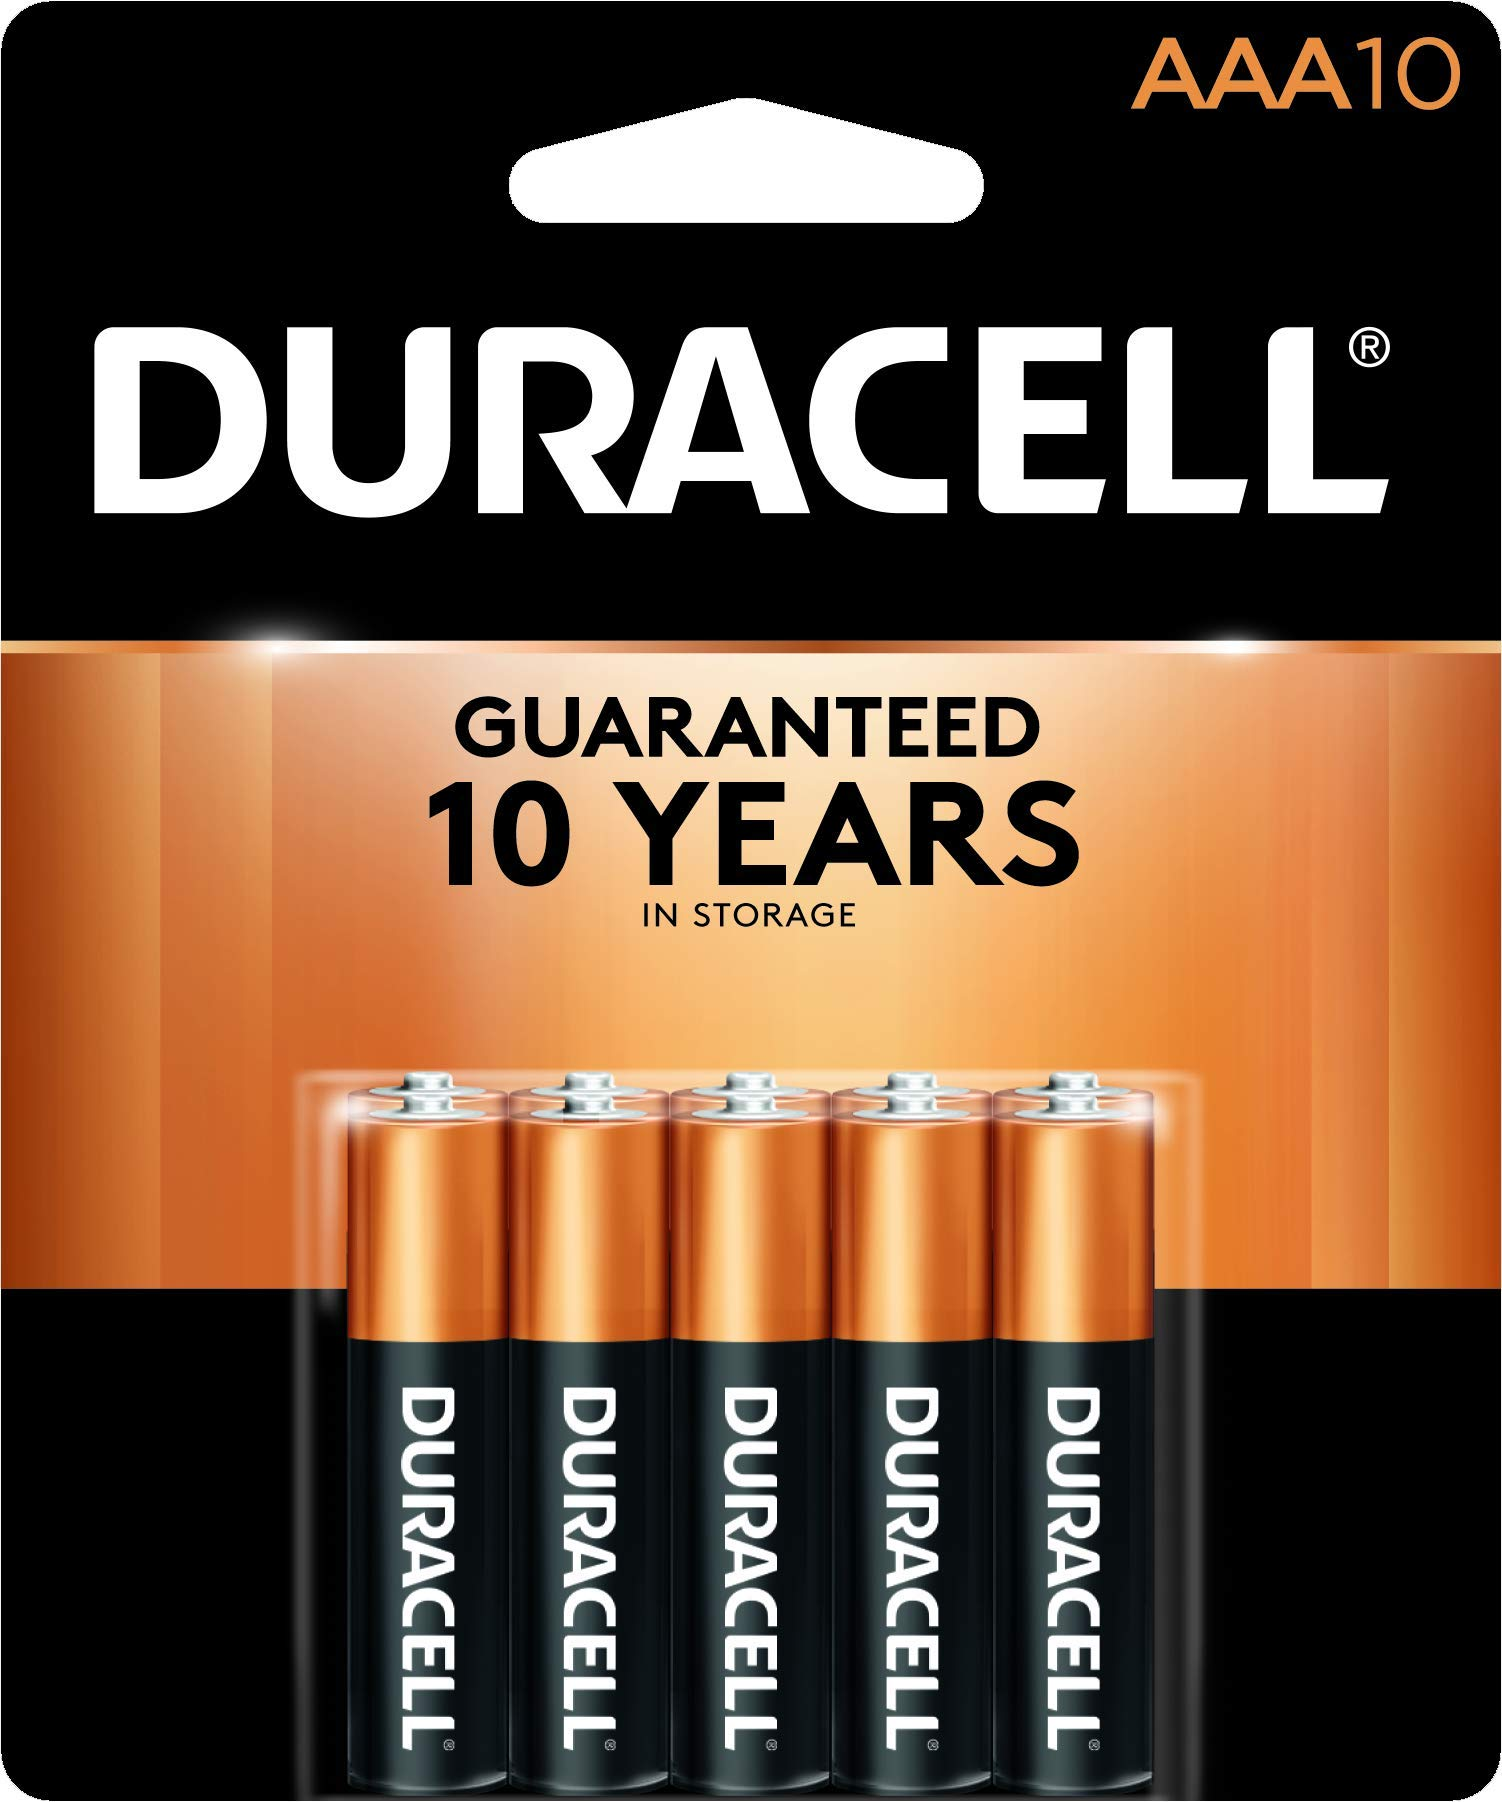 Duracell - Coppertop AAA Alkaline Batteries - long lasting, all-purpose Triple A battery for household and business - 10 count